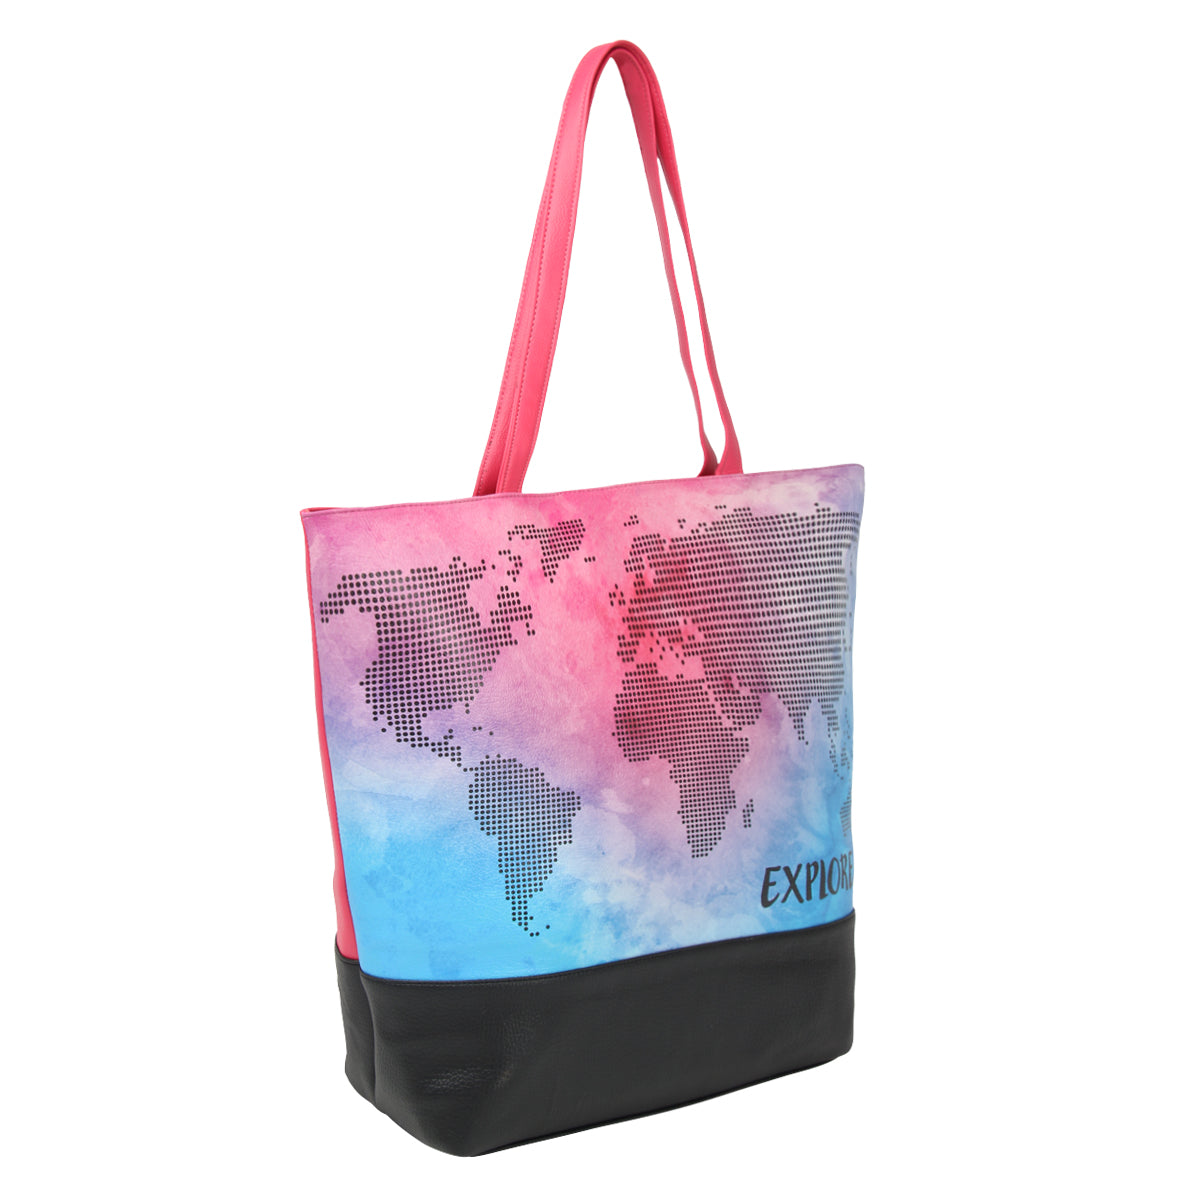 Explore Women's Beach Bag